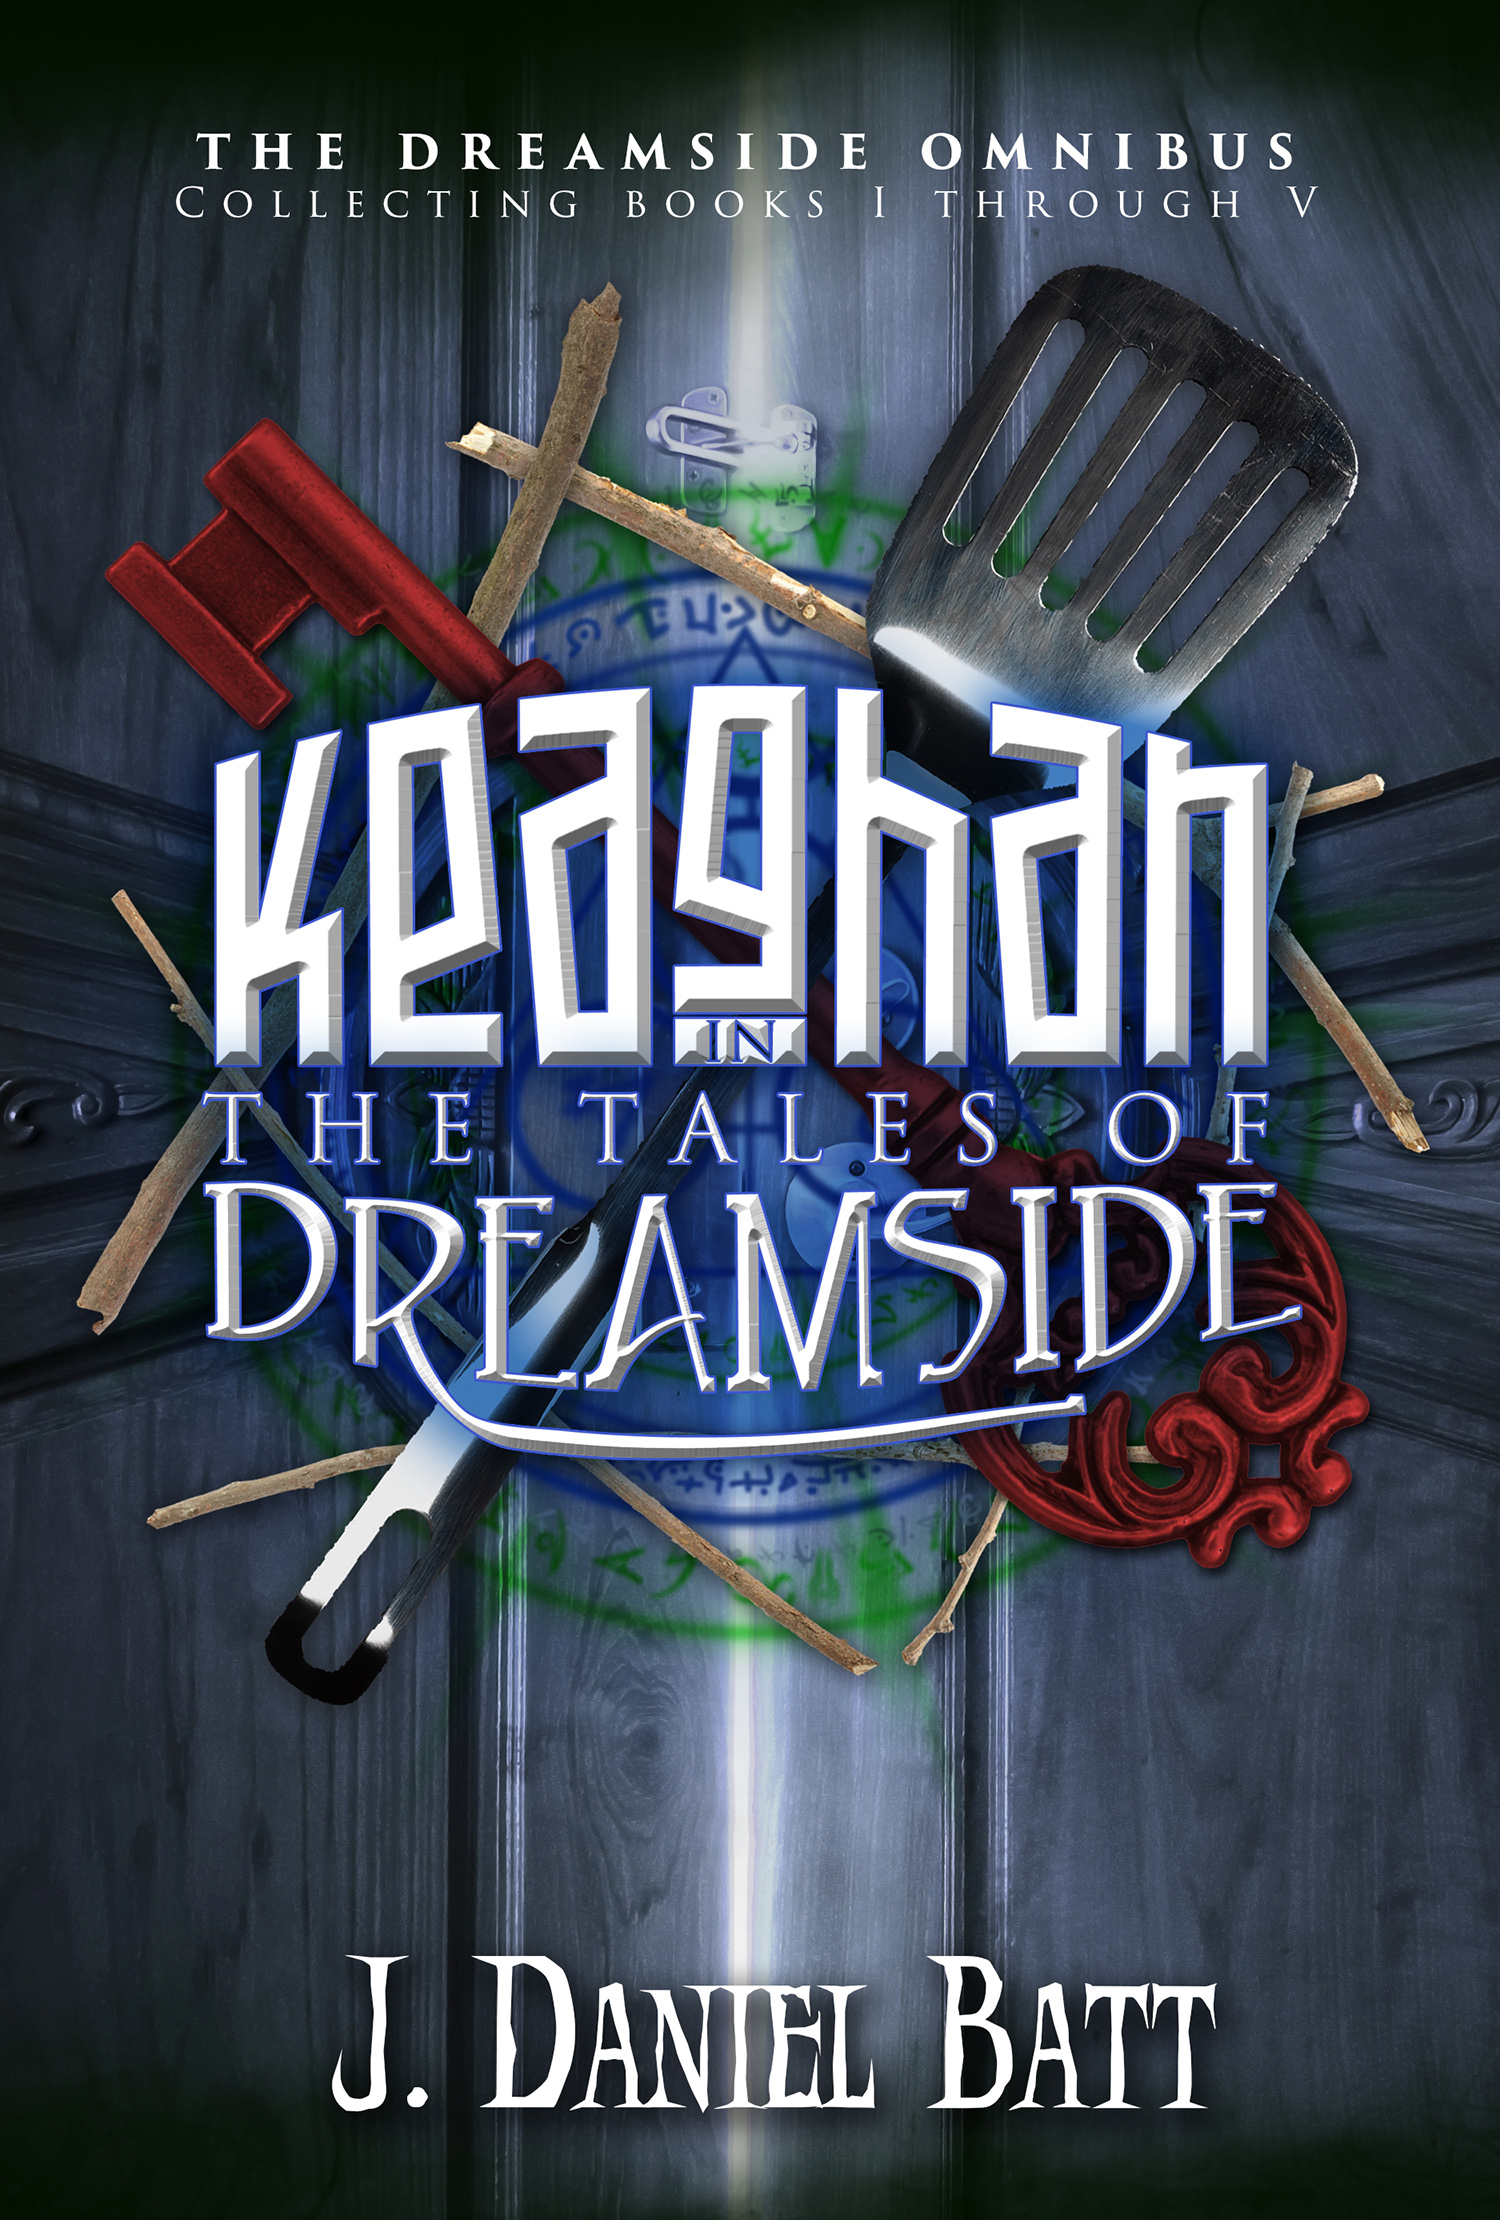 The Tales of Dreamside coming March 1st: Pre-order now available!